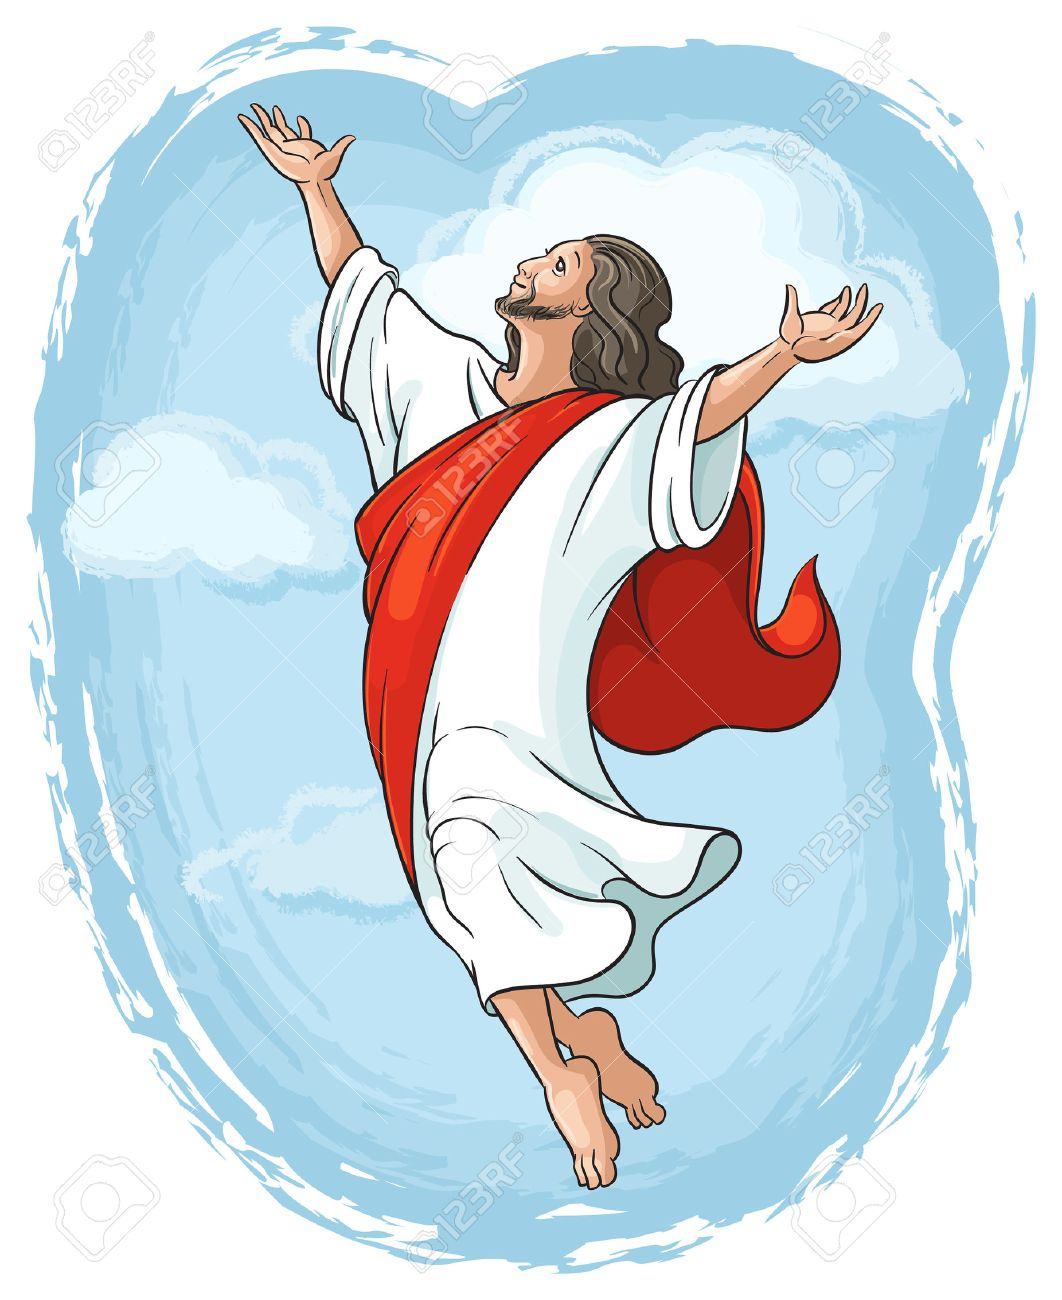 Ascension of Jesus raising hands in sky, Easter theme - 26436959